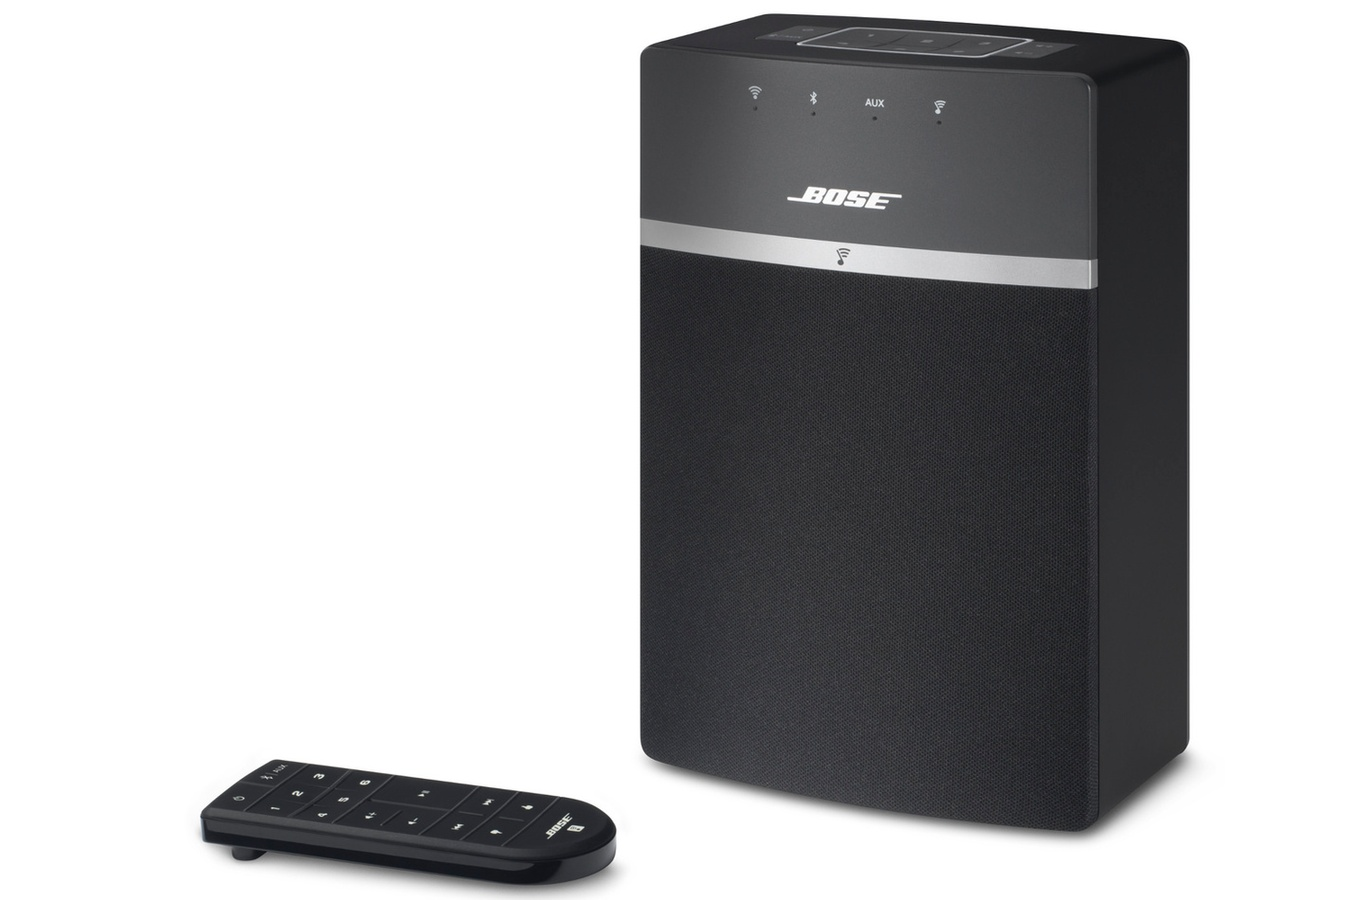 soundtouch 10 bose soundtouch 10 audiofanzine. Black Bedroom Furniture Sets. Home Design Ideas